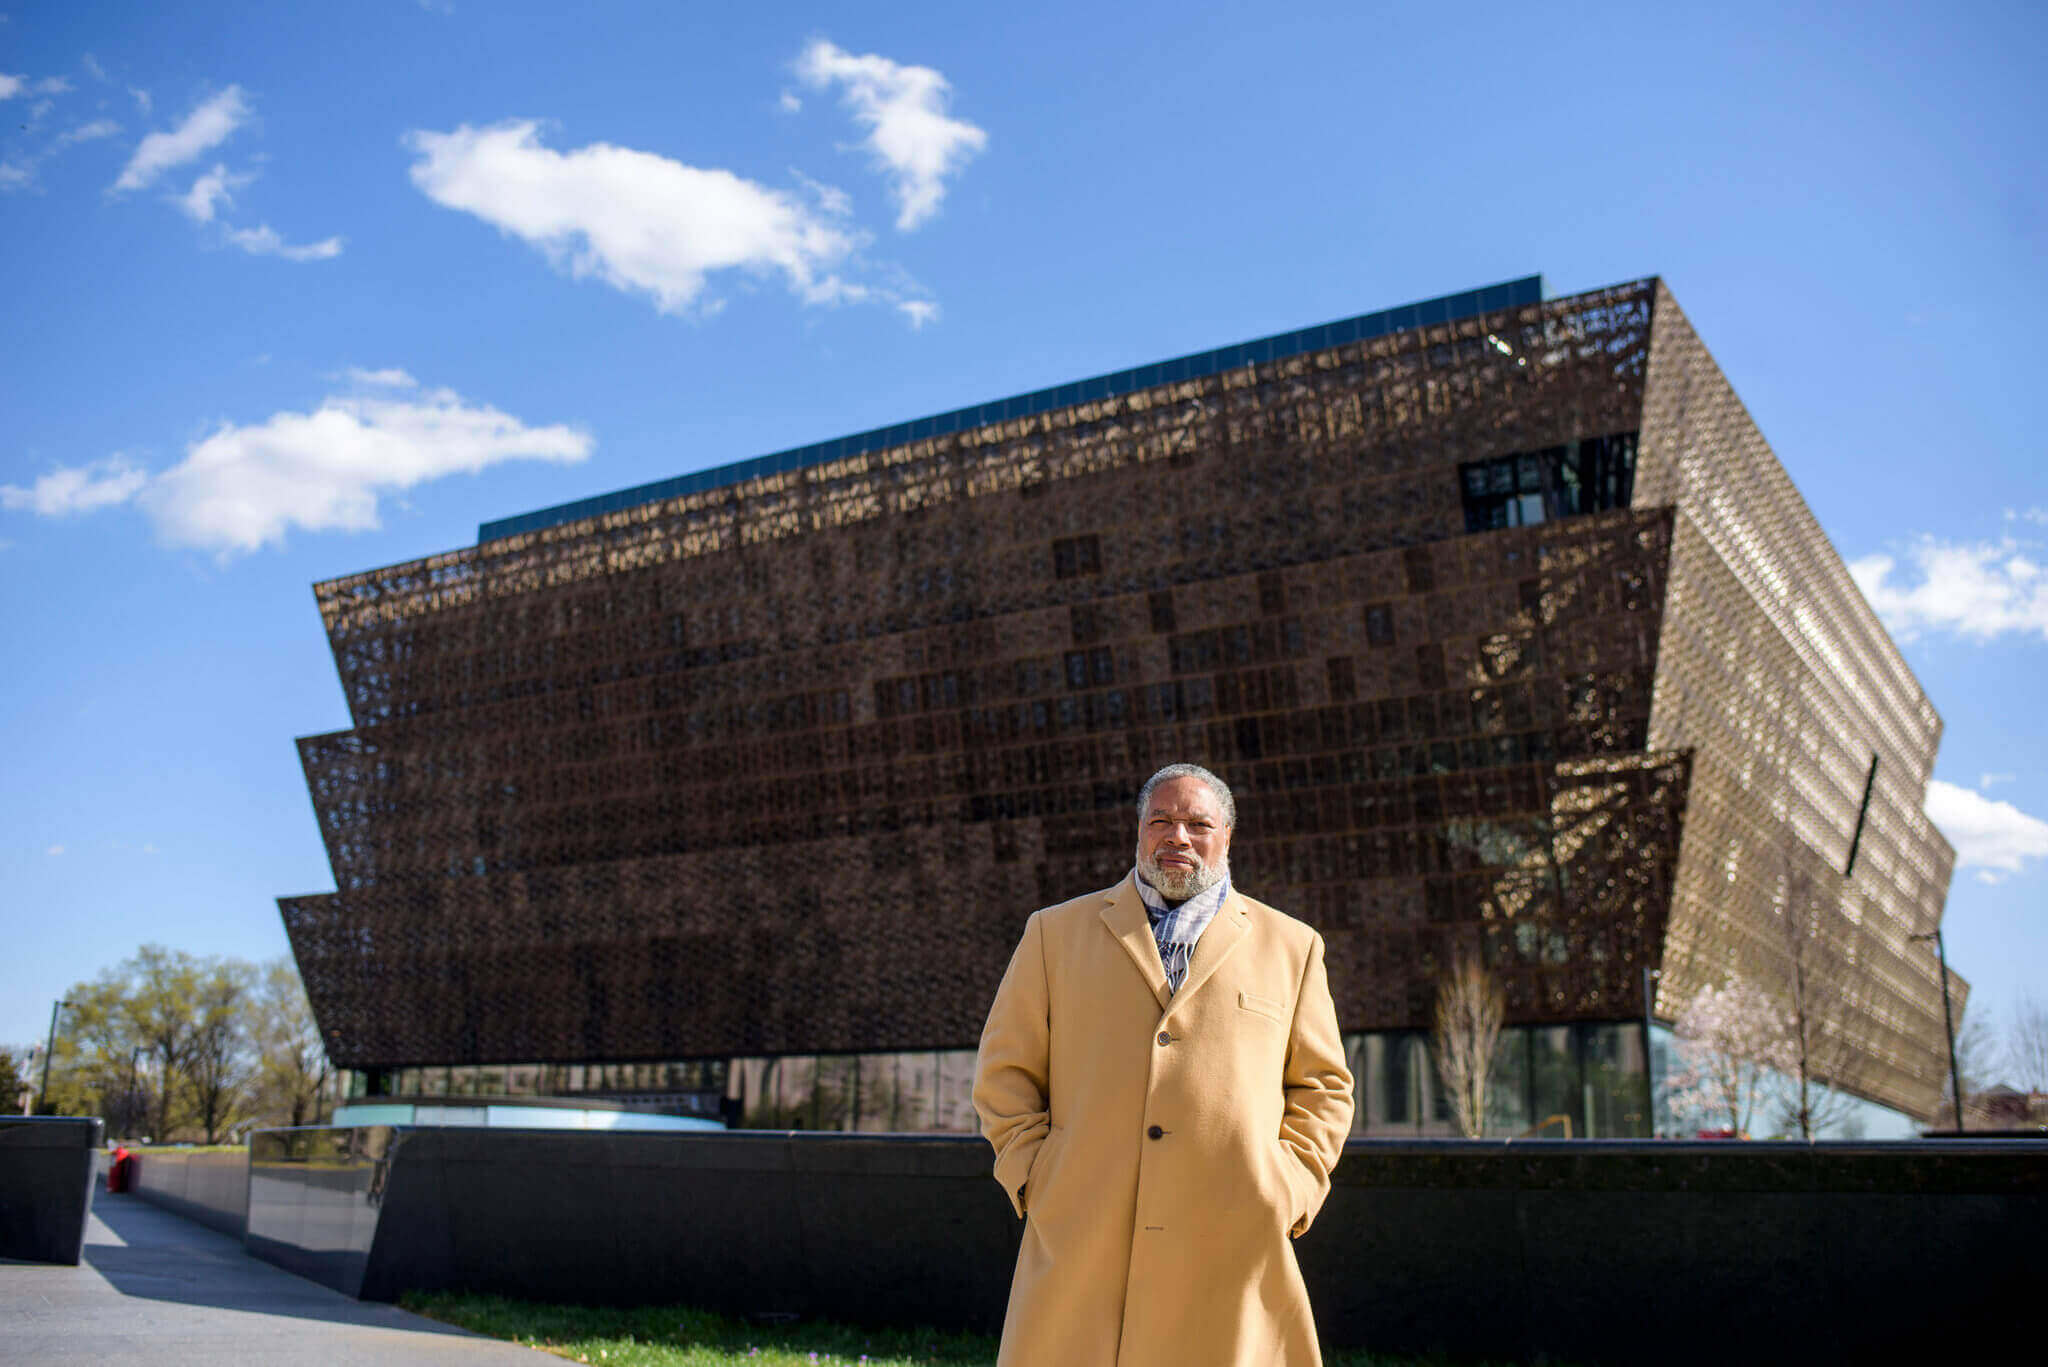 Lonnie Bunch III, Directeur du 'National Museum of African American History and Culture' Crédit Photo : Matt Roth/NY Times